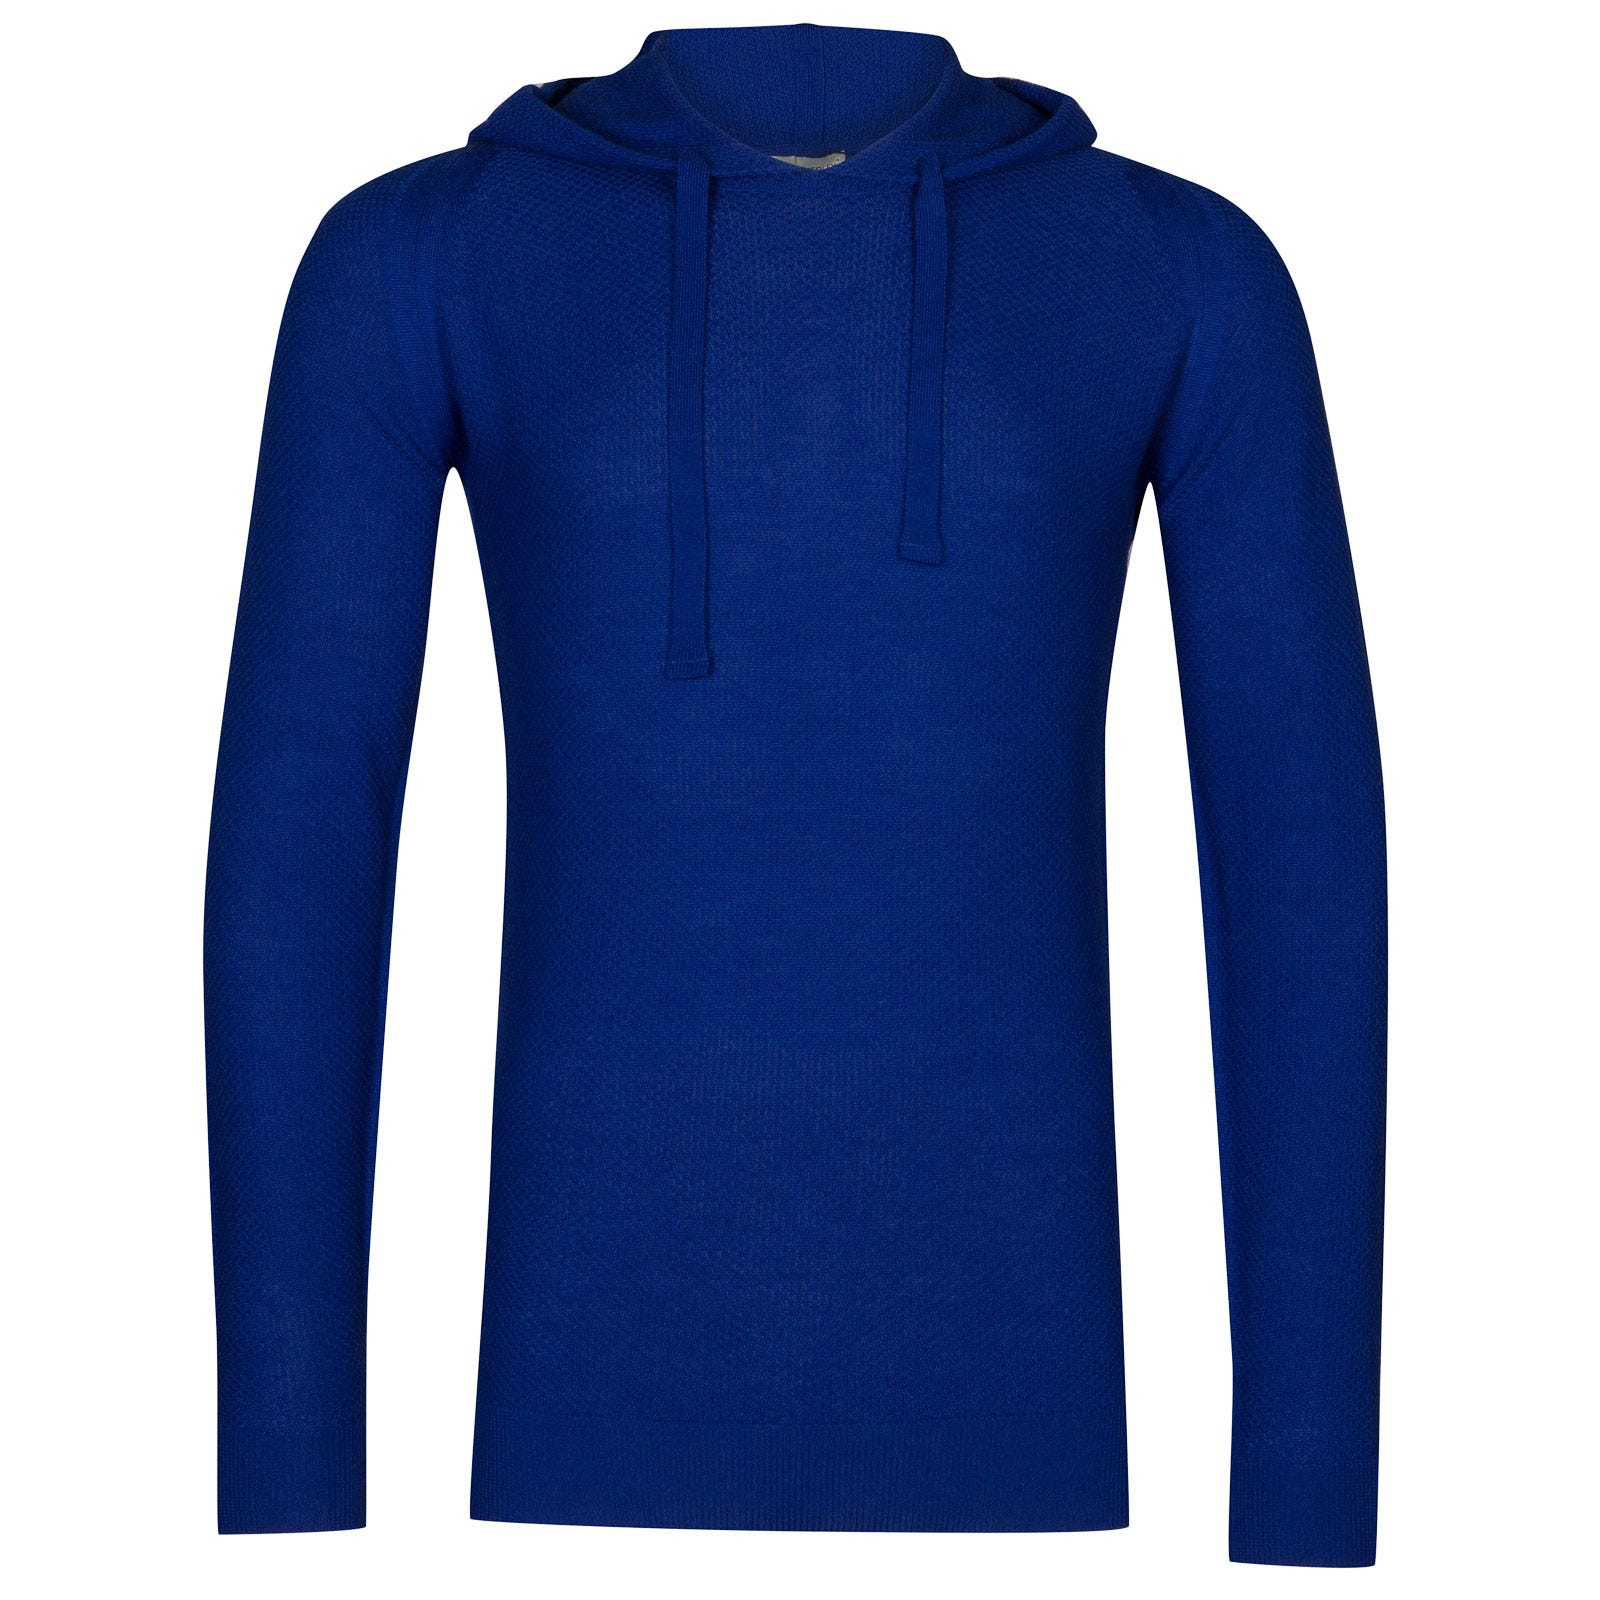 John Smedley 4Singular Merino Wool Pullover in Coniston Blue-XS